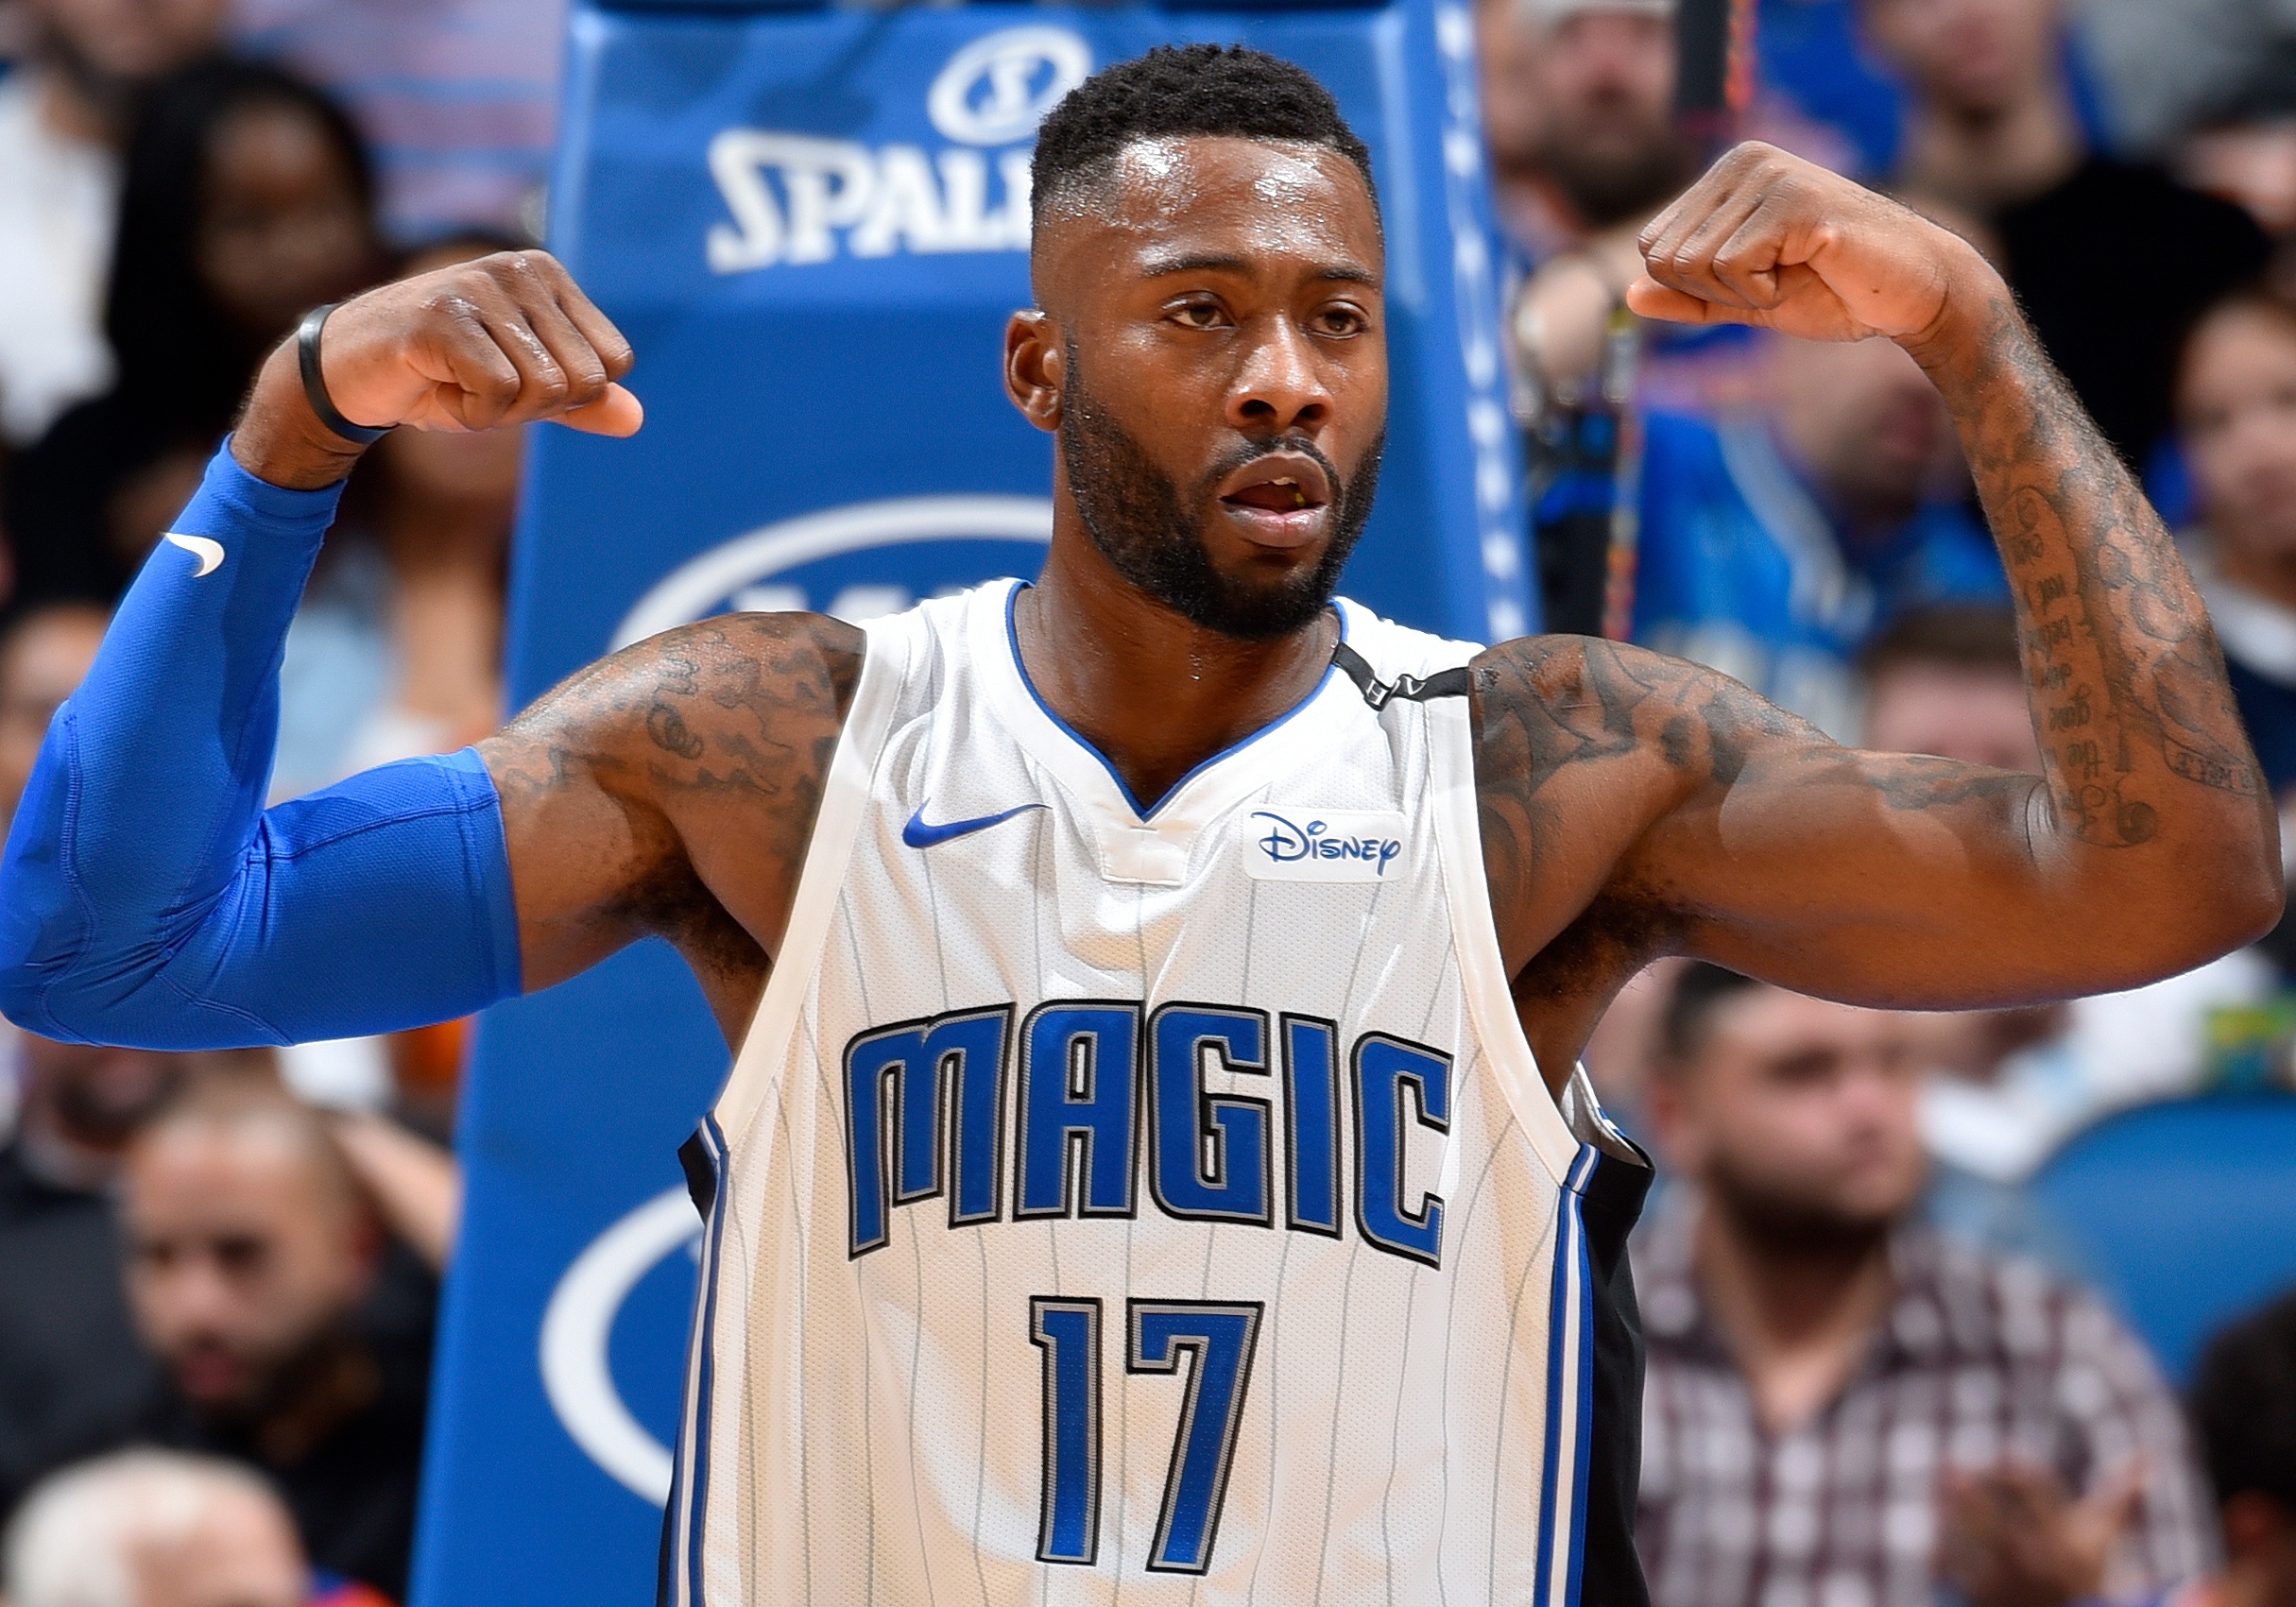 Simmons' Toughness and Determination on Display with Magic